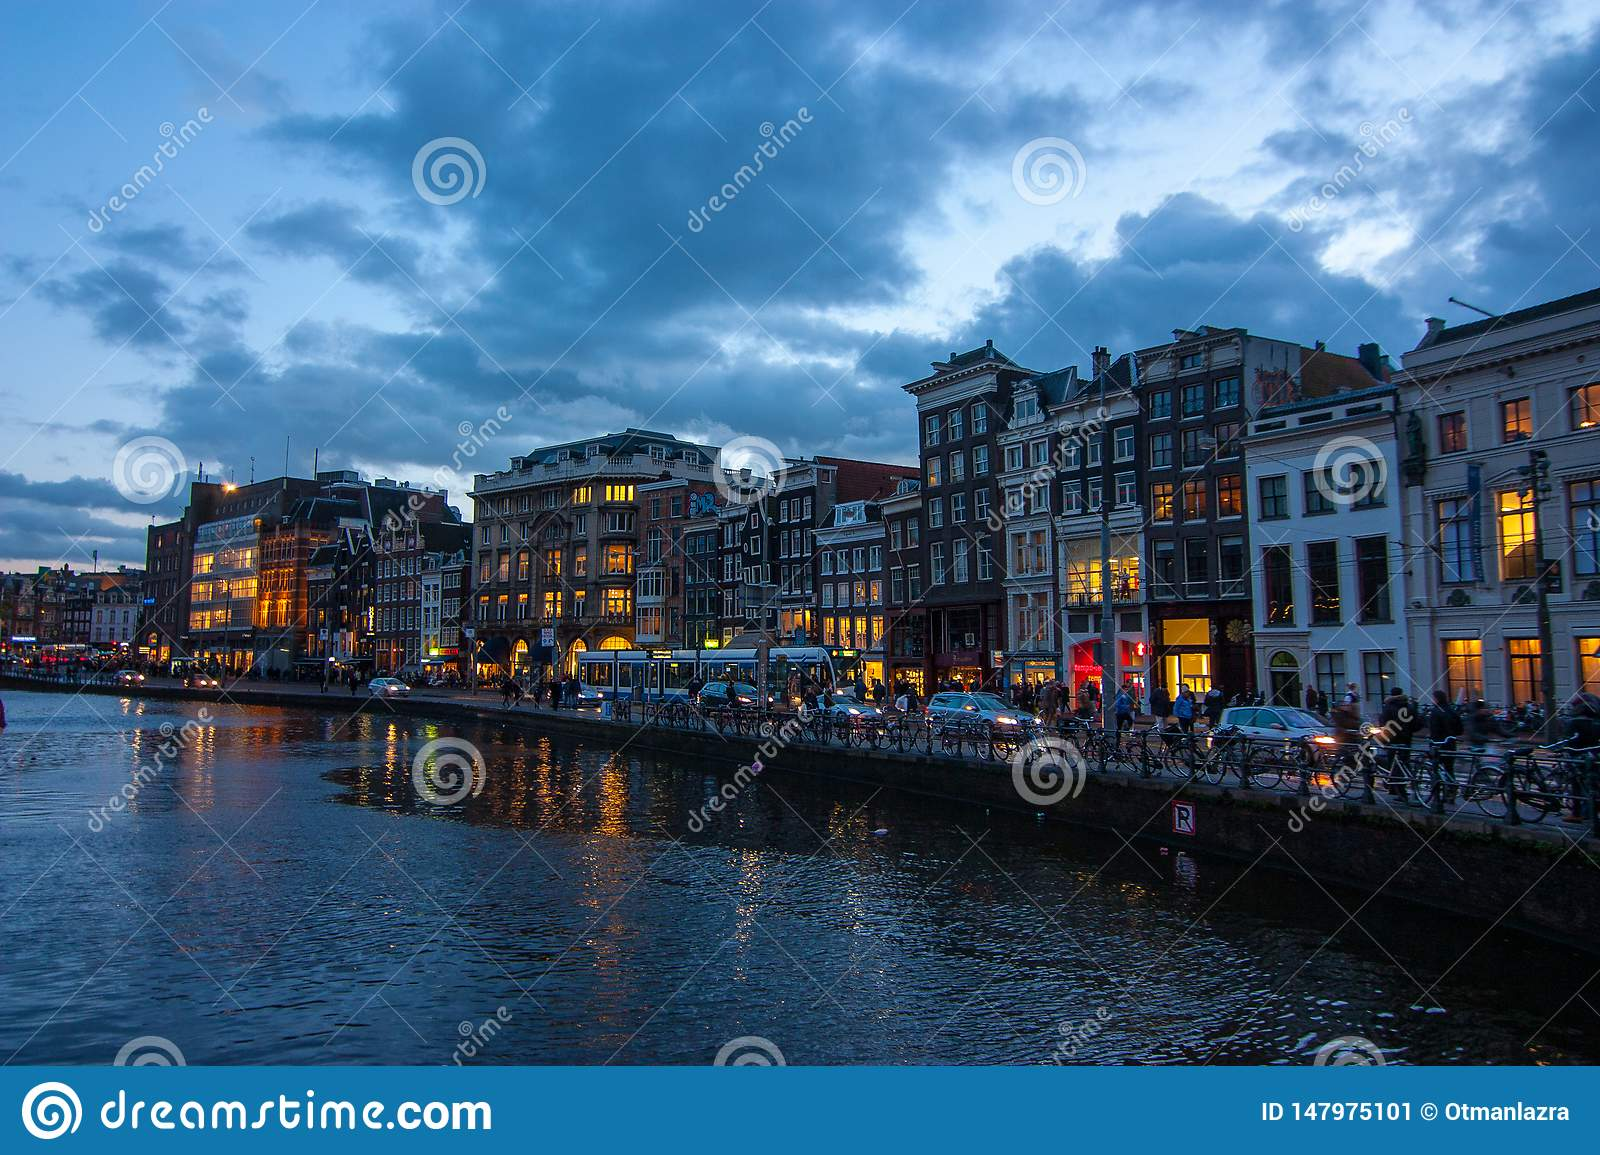 Traditional canal houses on the Damrak at dusk in Amsterdam.